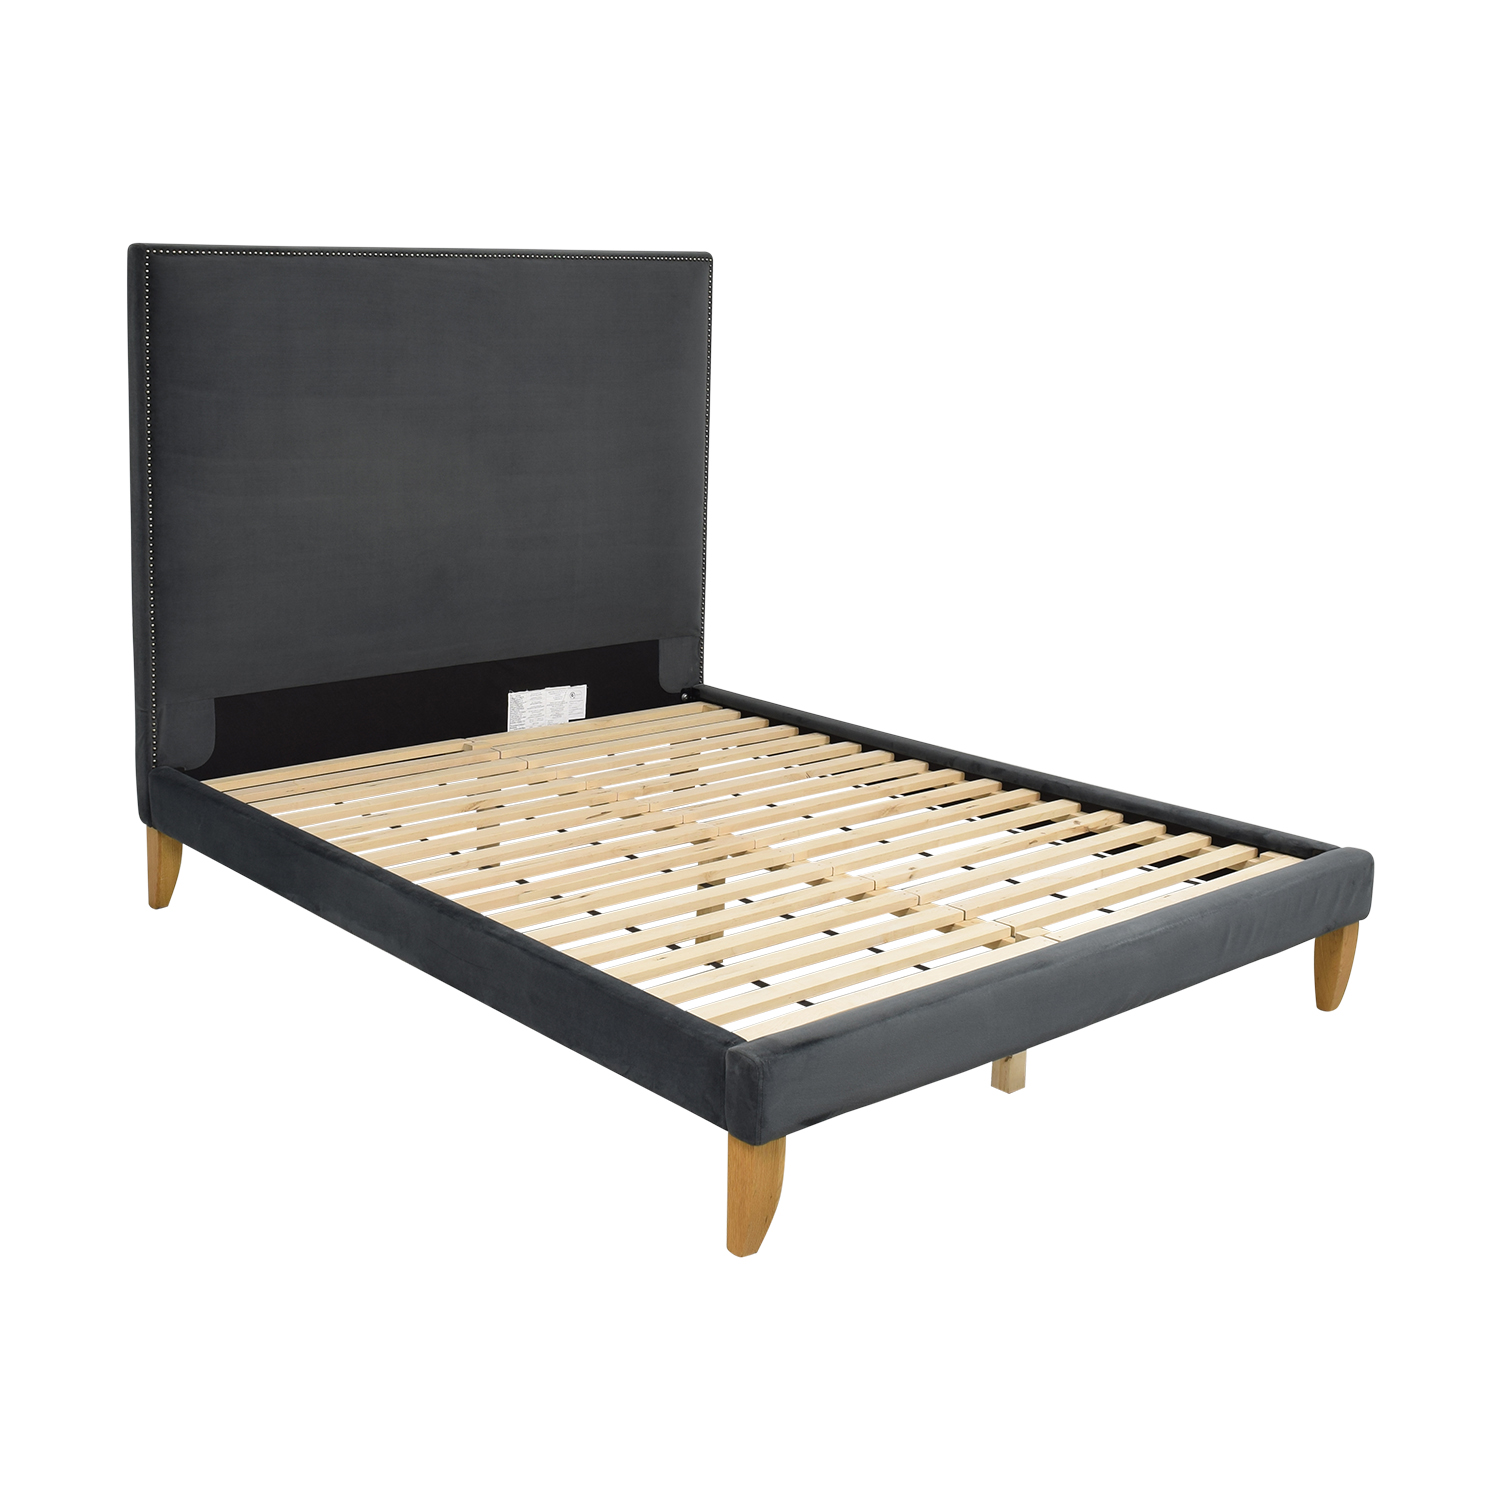 West Elm West Elm Upholstered Queen Platform  Bed dark blue